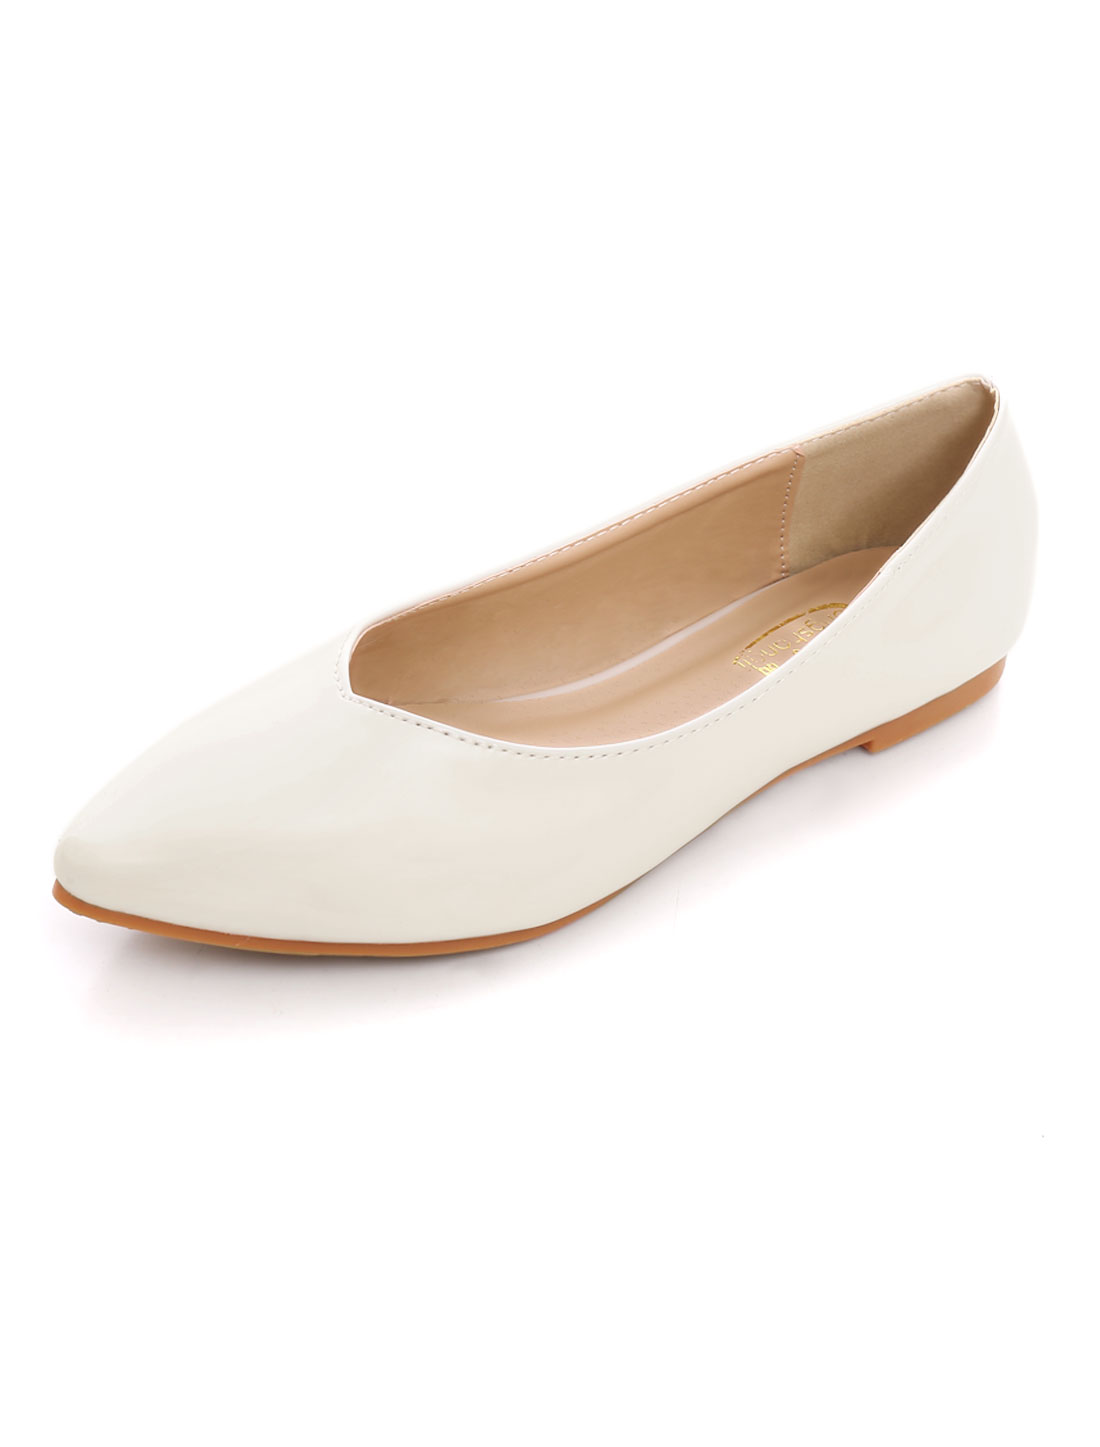 Woman Flat Sole V-Cut Vamp PU Ballet Pointed Toe Flats White US 9-9.5